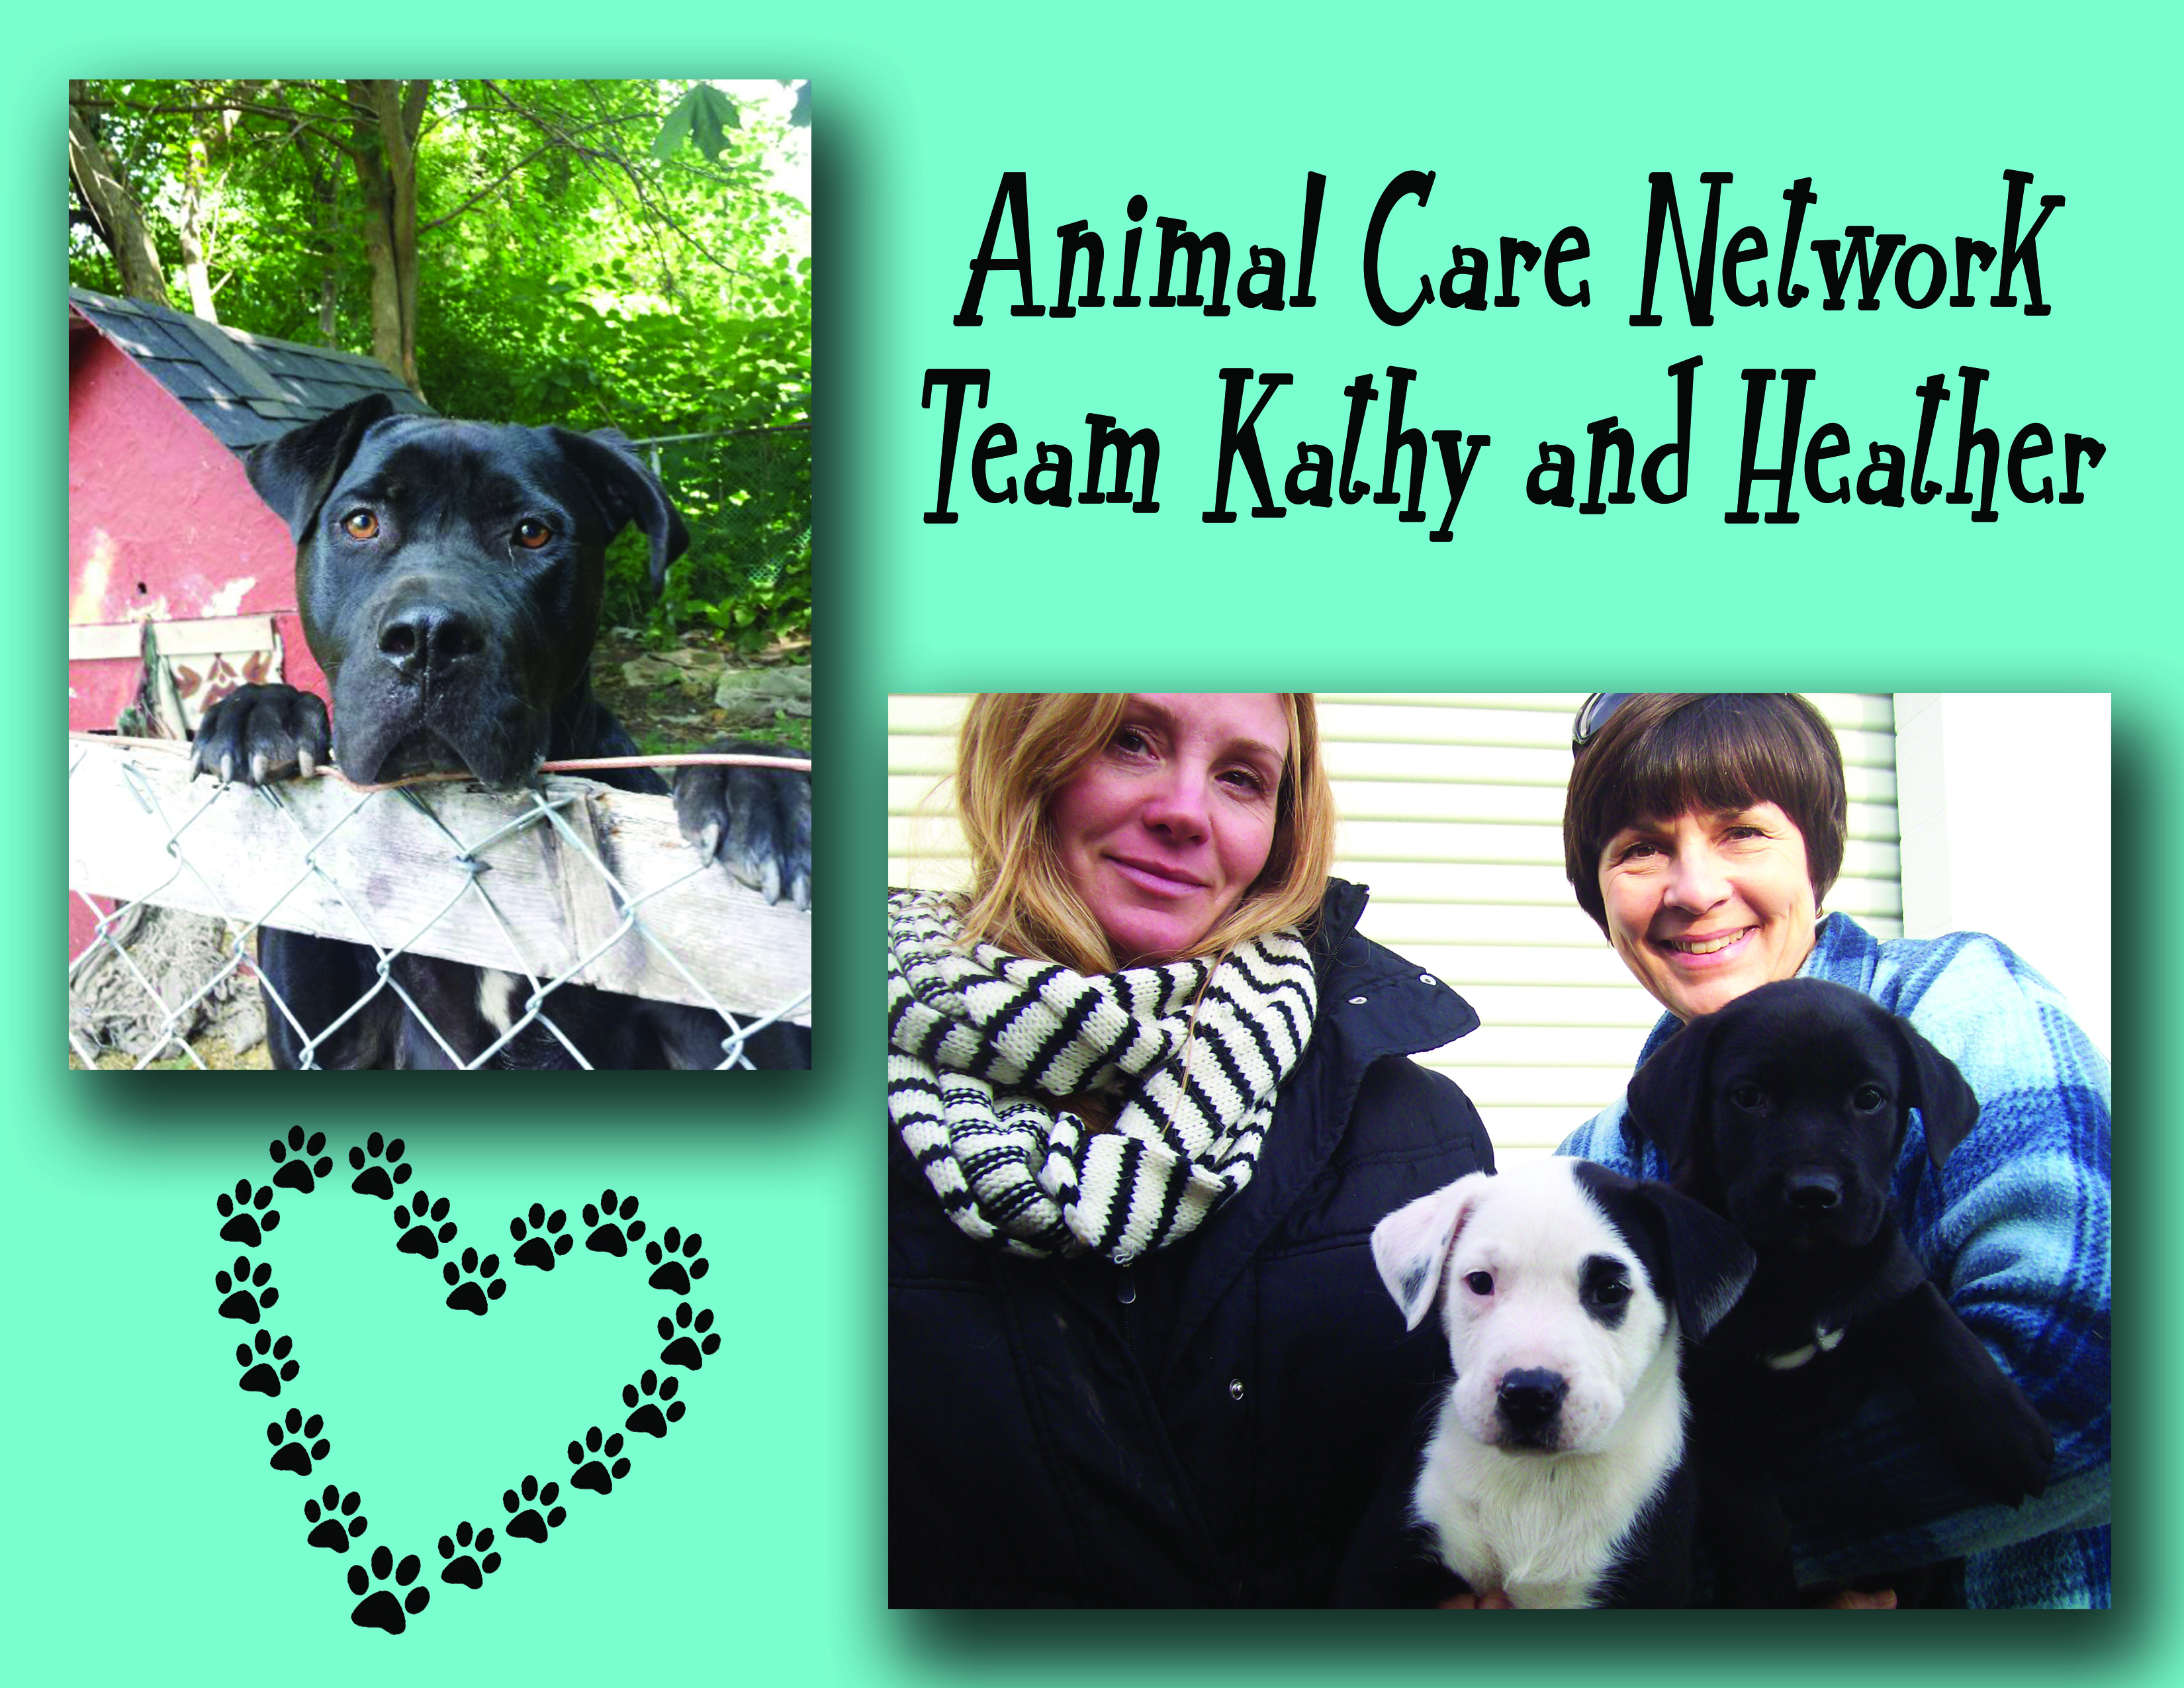 team kathy and heather